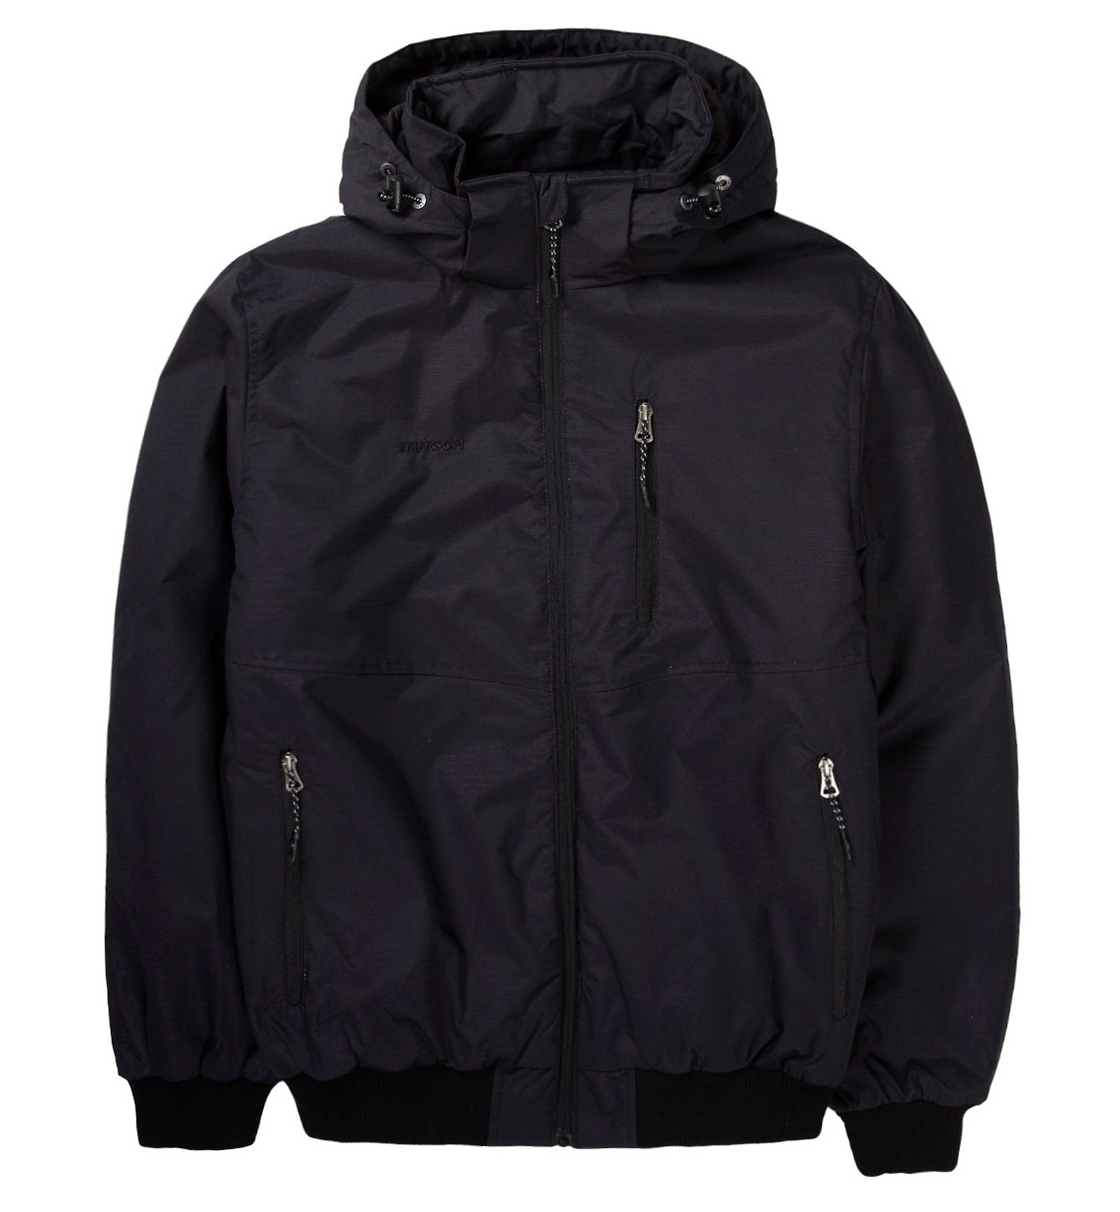 Emerson Fw19 Men'S Ribbed Jacket With Det/Ble Hood